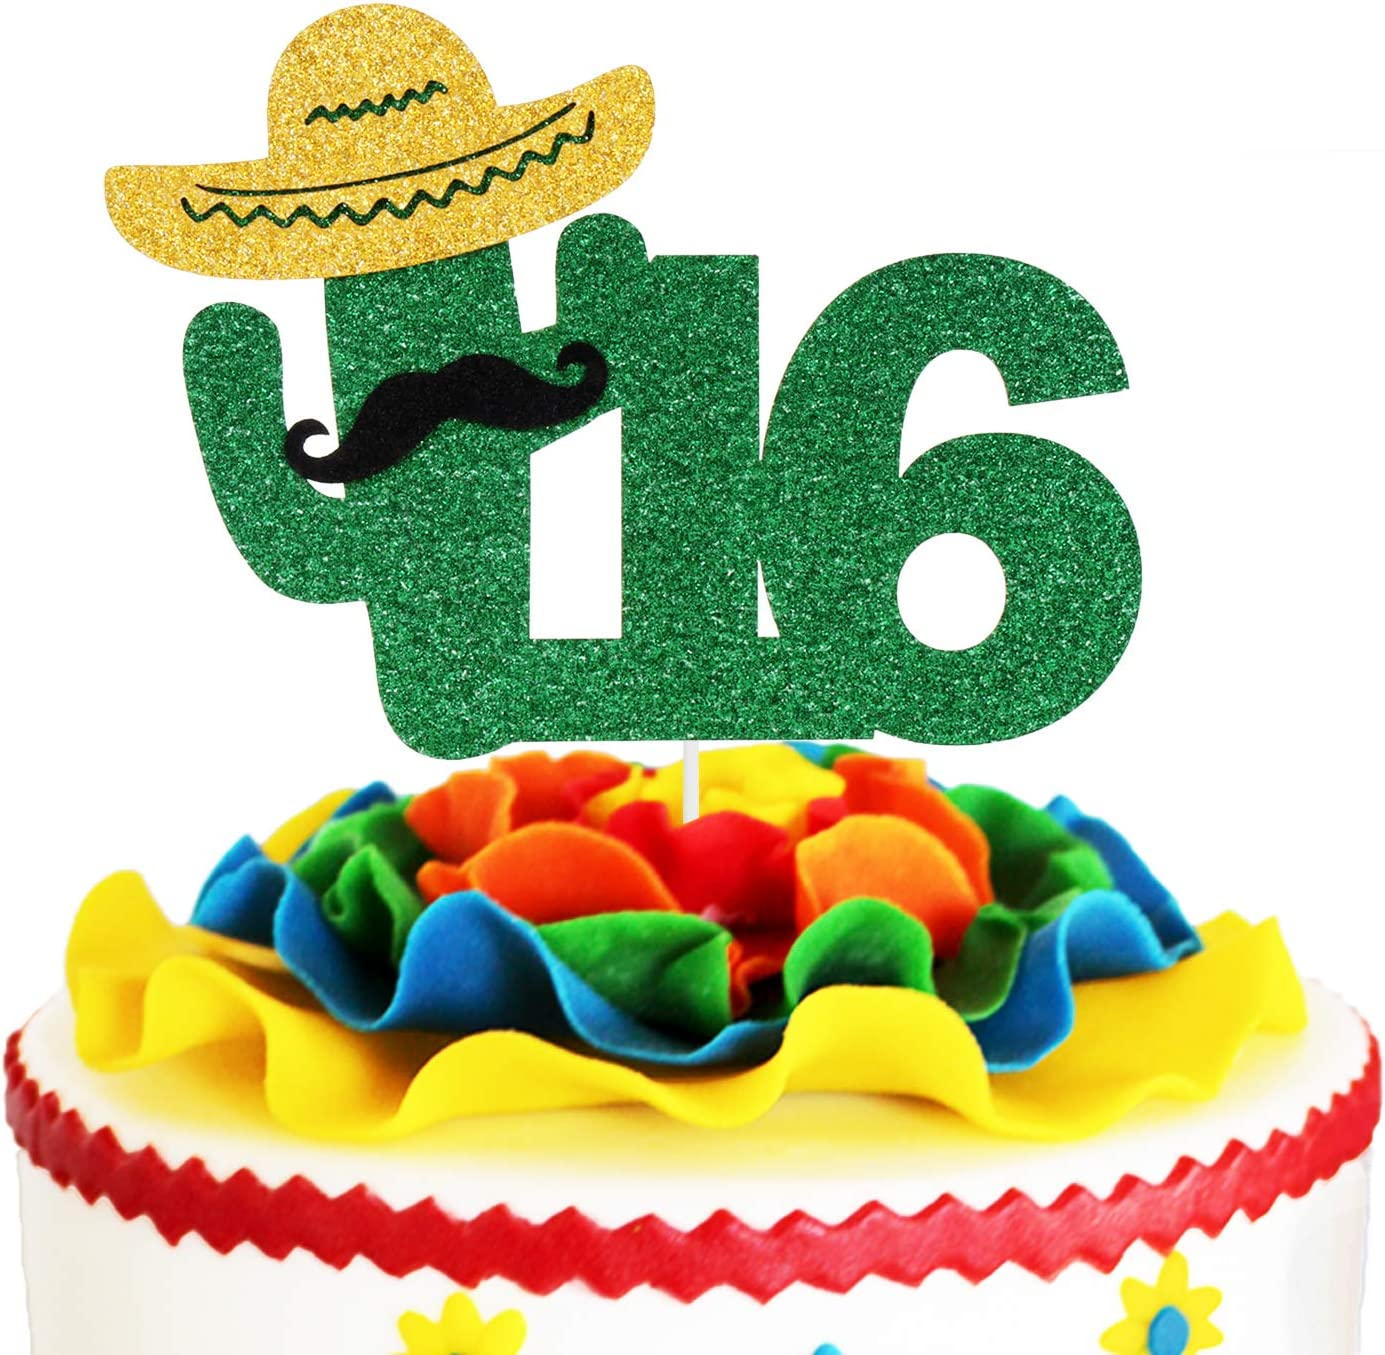 Fiesta 16th Birthday Cake Topper Green Glitter Mexican Fiesta Cake Supplies Cheers to Sweet 16 Boys Girls Sixteen Years Old Birthday Party Decoration